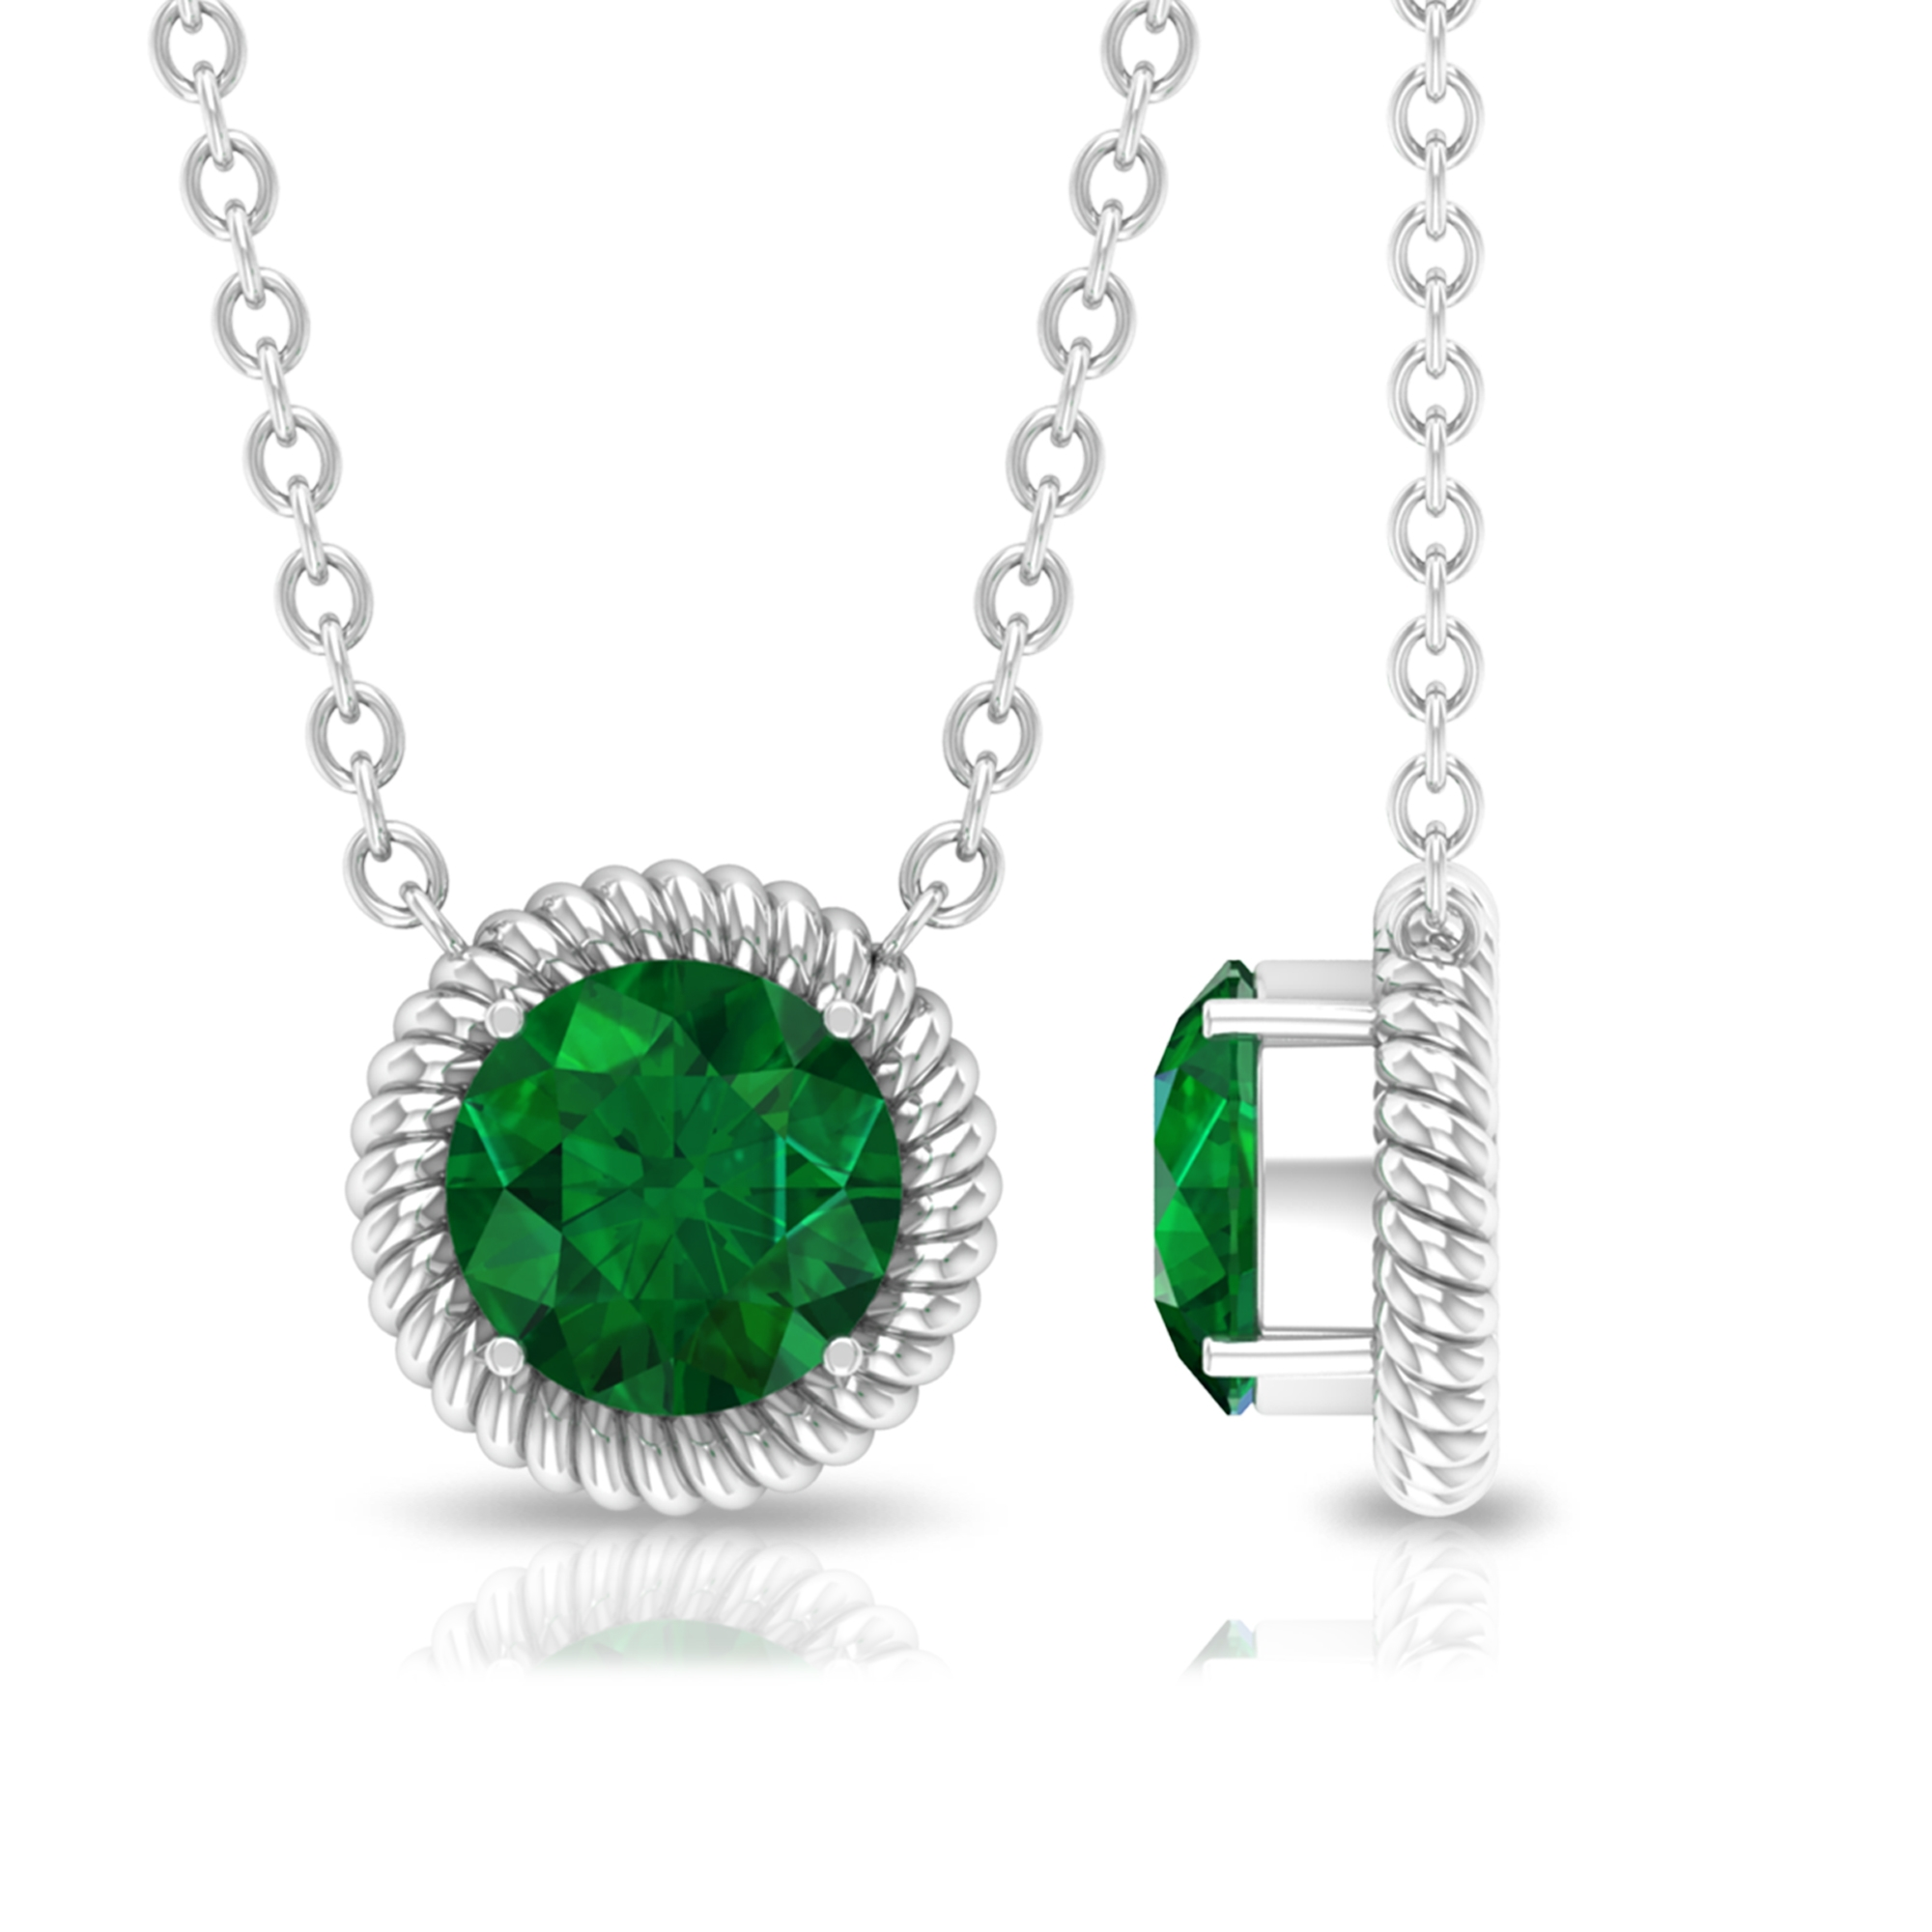 5 MM Round Cut Emerald Solitaire Minimal Necklace in 4 Prong Setting with Rope Frame